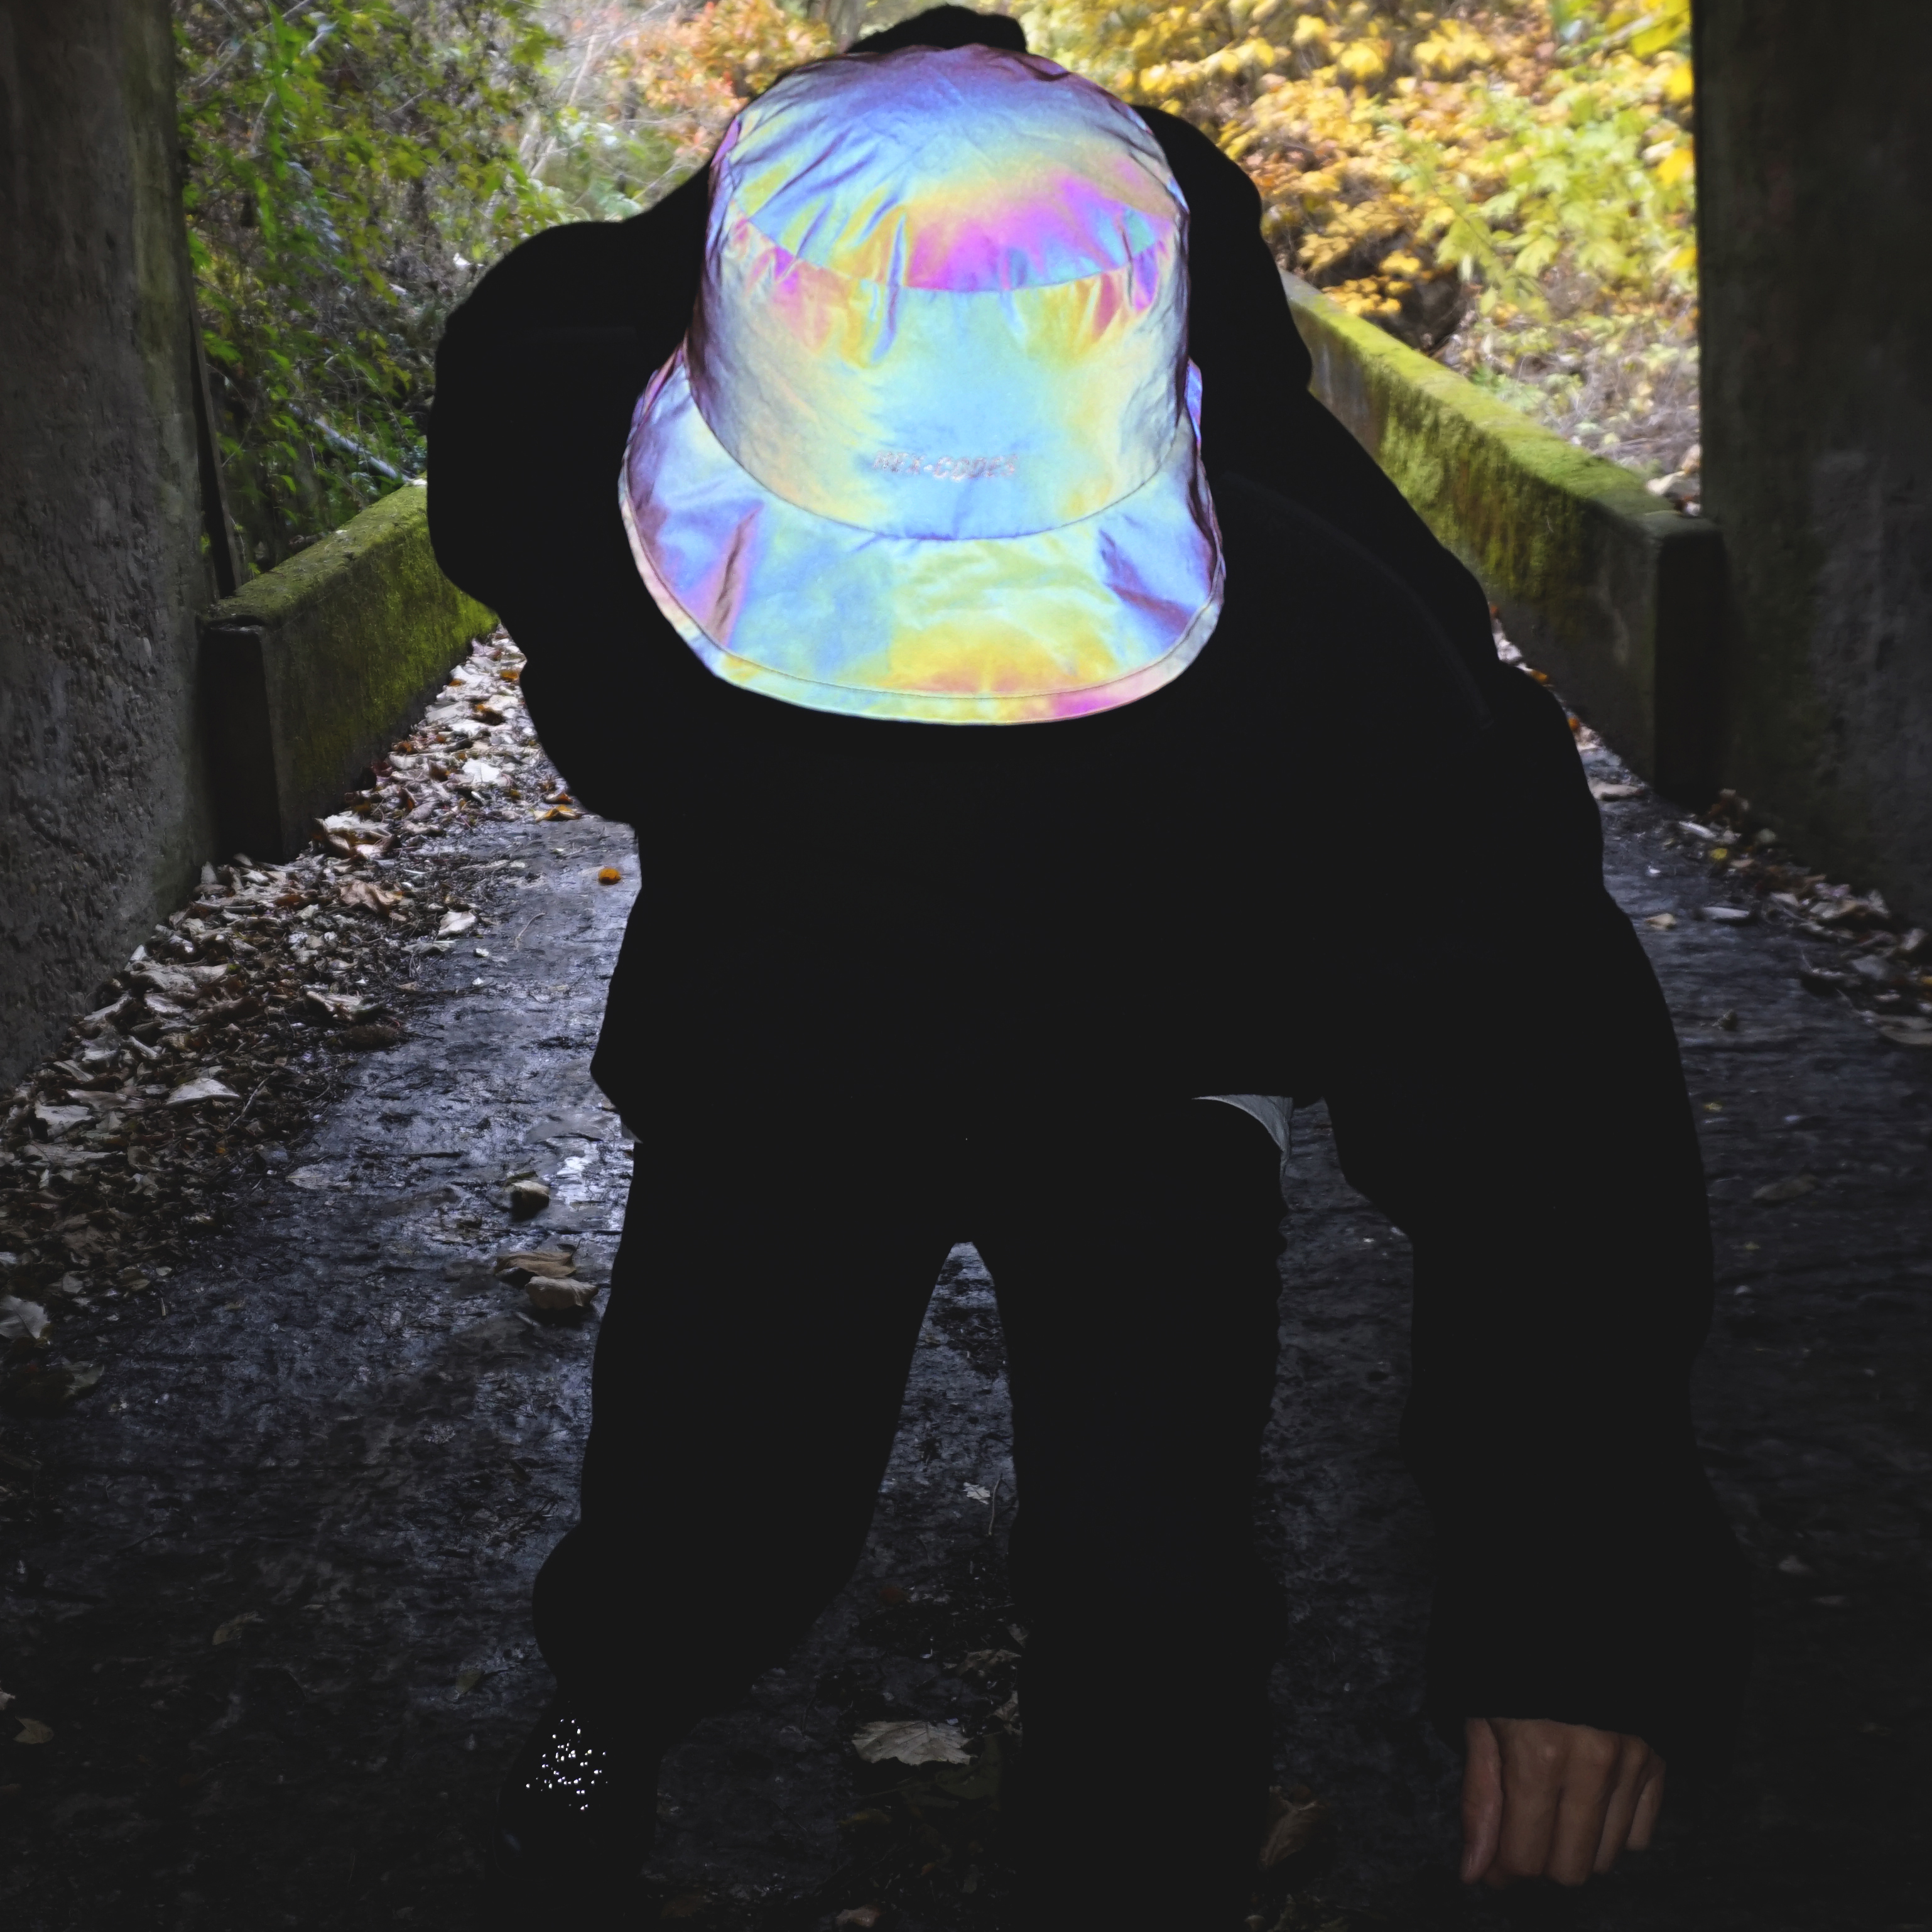 H07 REFLECTIVE HAT WITH 3M HOLOGRAM 홀로그램 버킷햇 모자